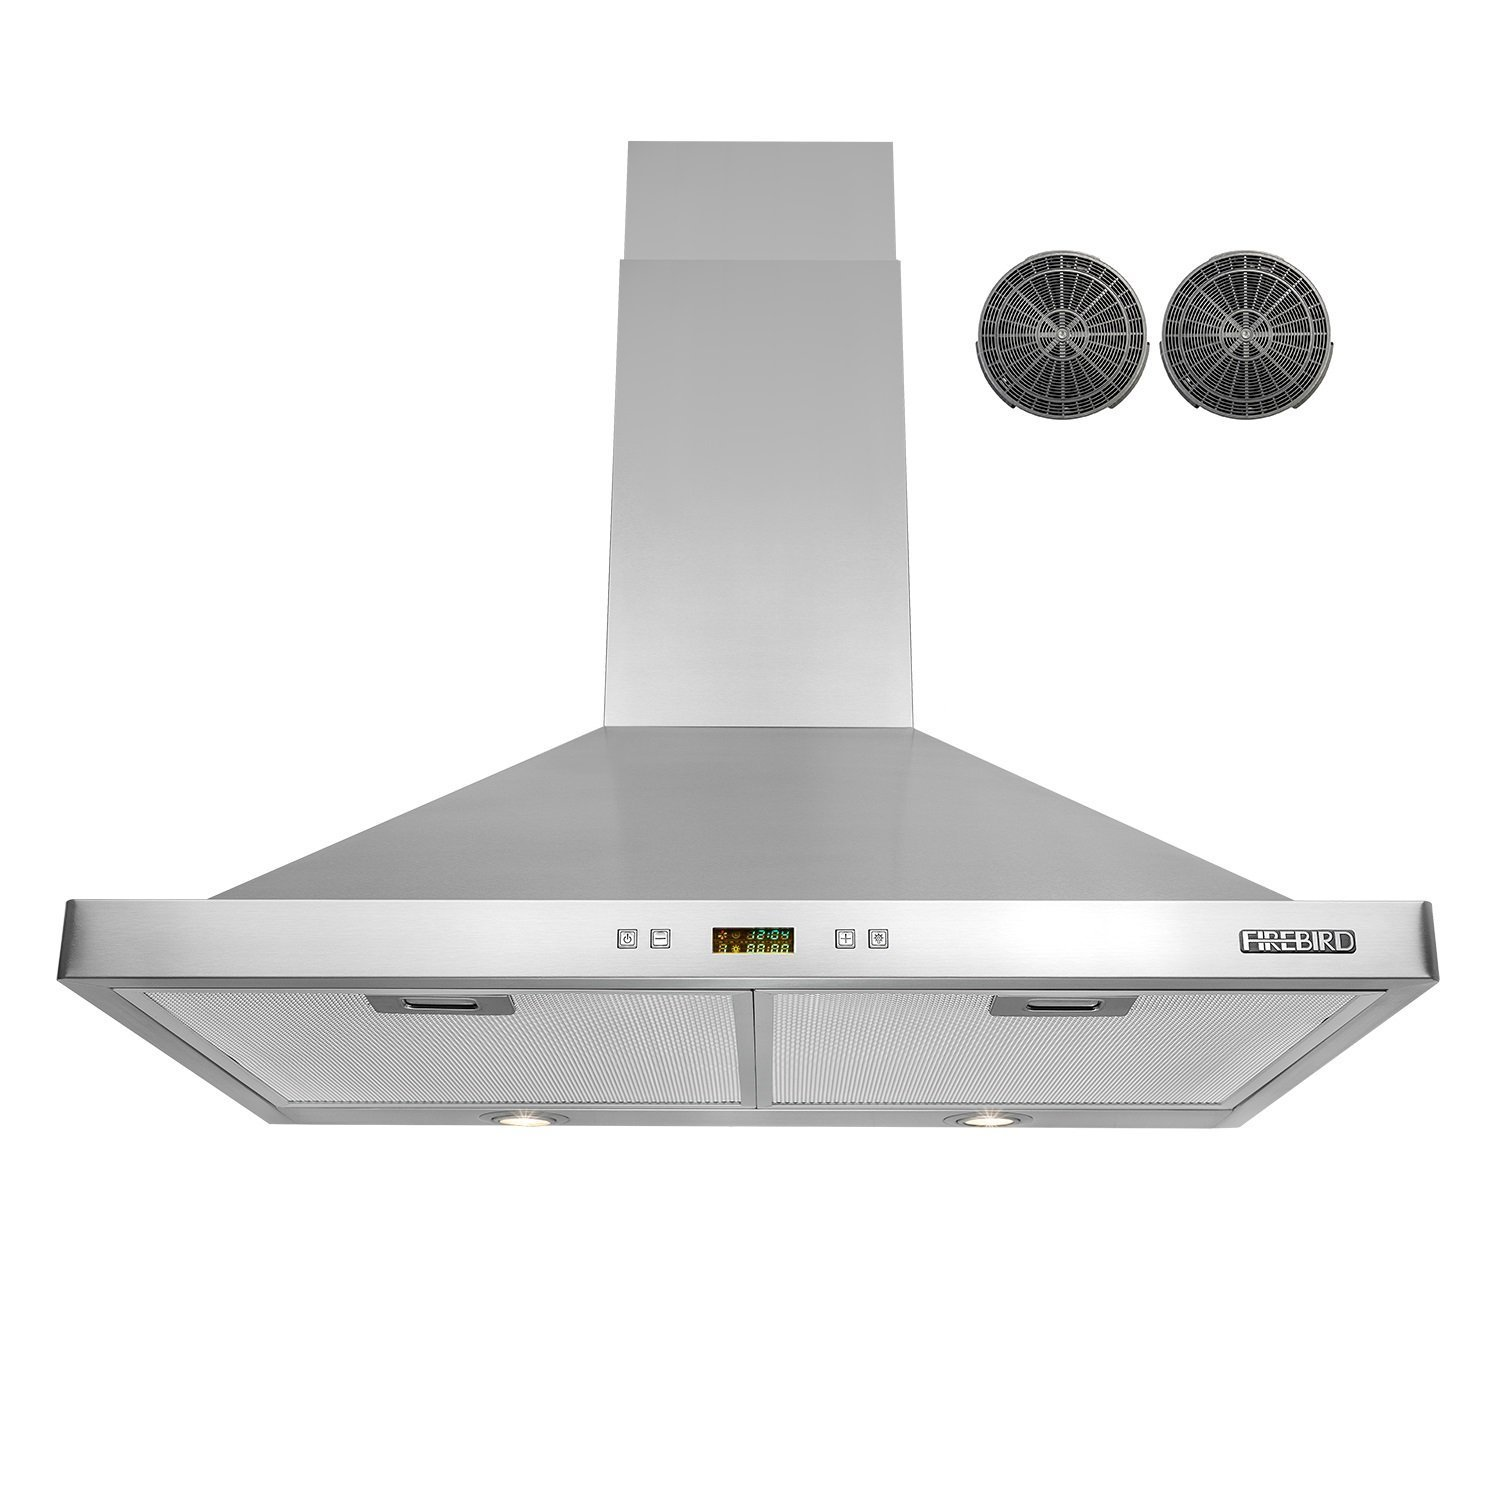 "FIREBIRD 30"" Wall-mounted Stainless Steel Range Hood with Charcoal Filters / Carbon Filters Included"